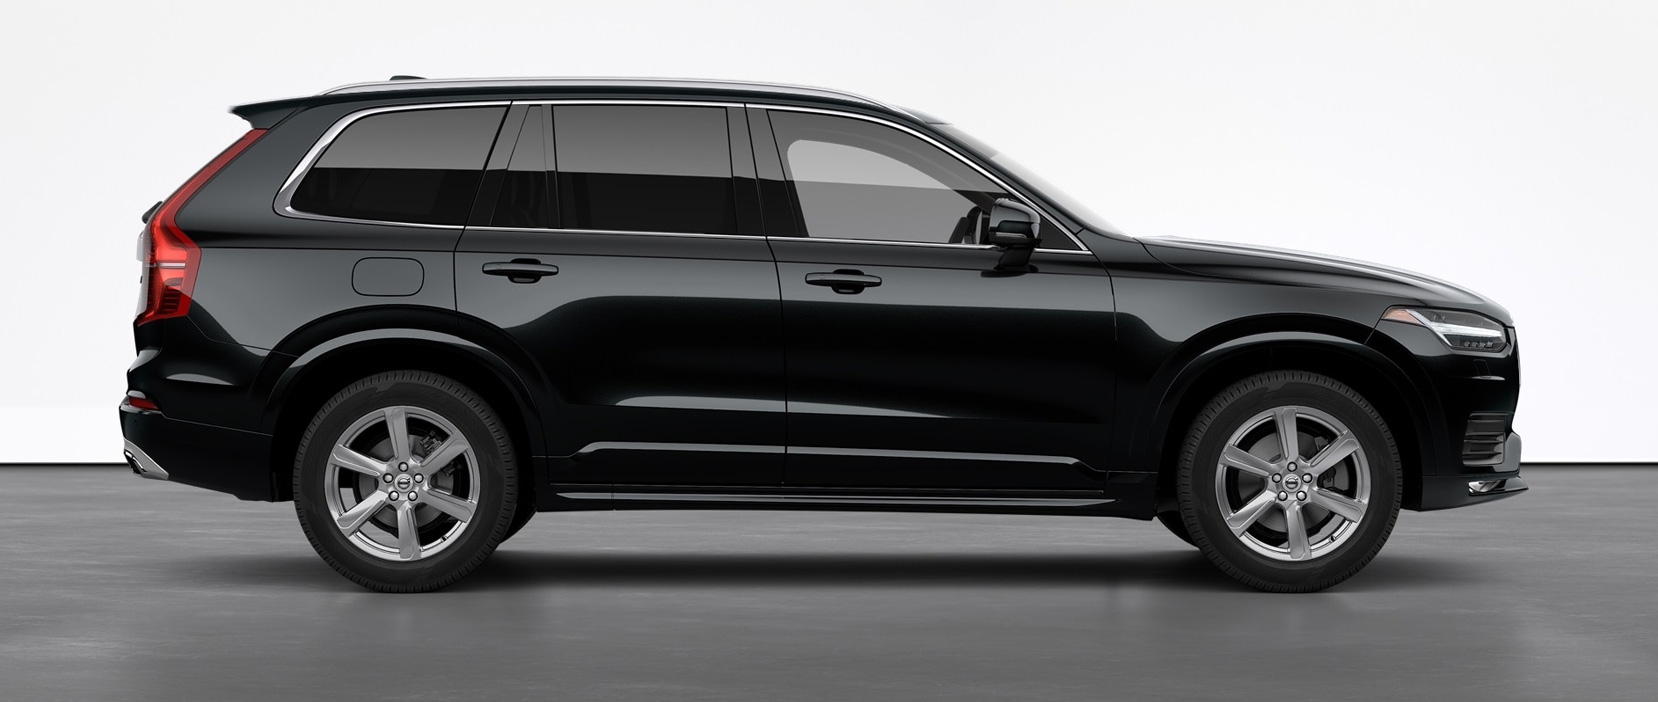 2021 Volvo XC90 T5 Momentum shown